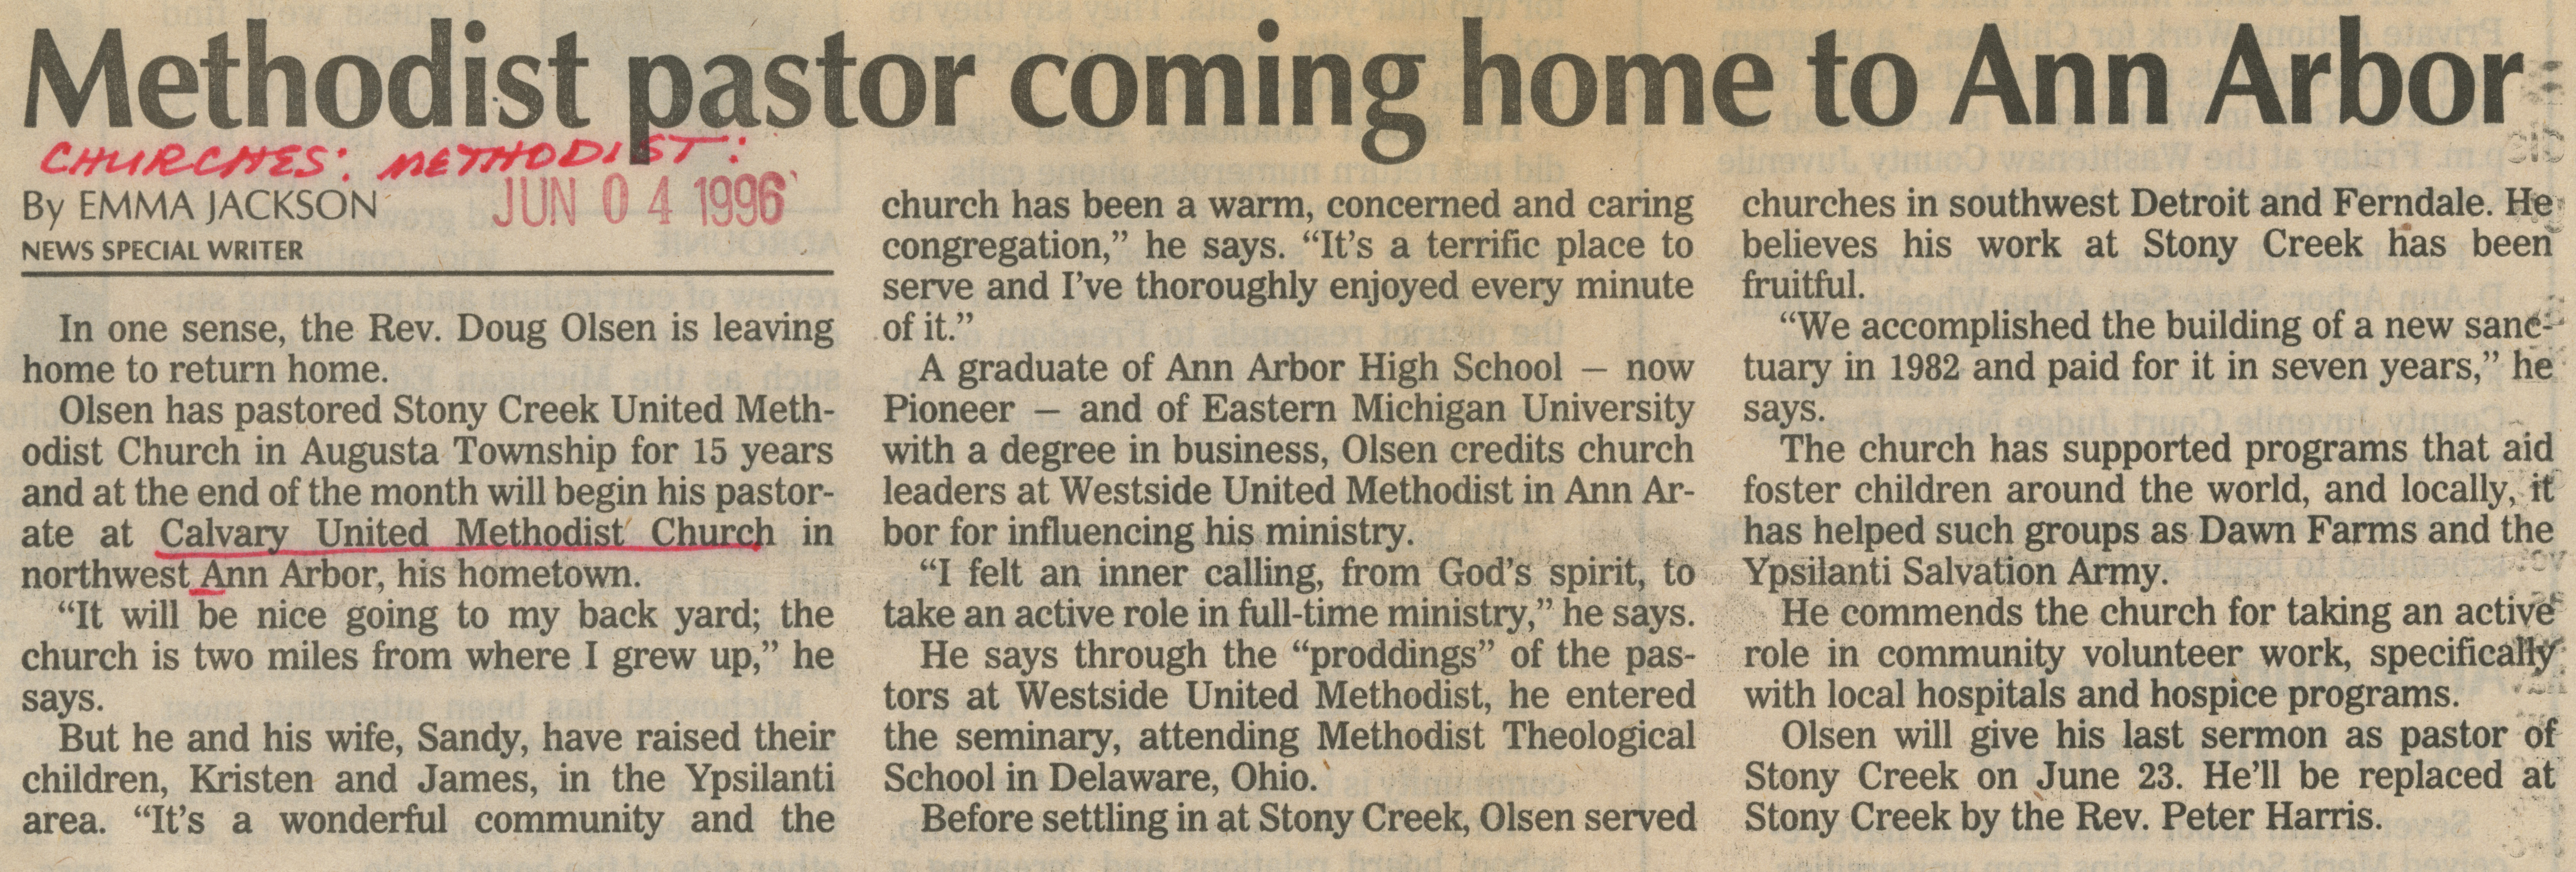 Methodist pastor coming home to Ann Arbor image